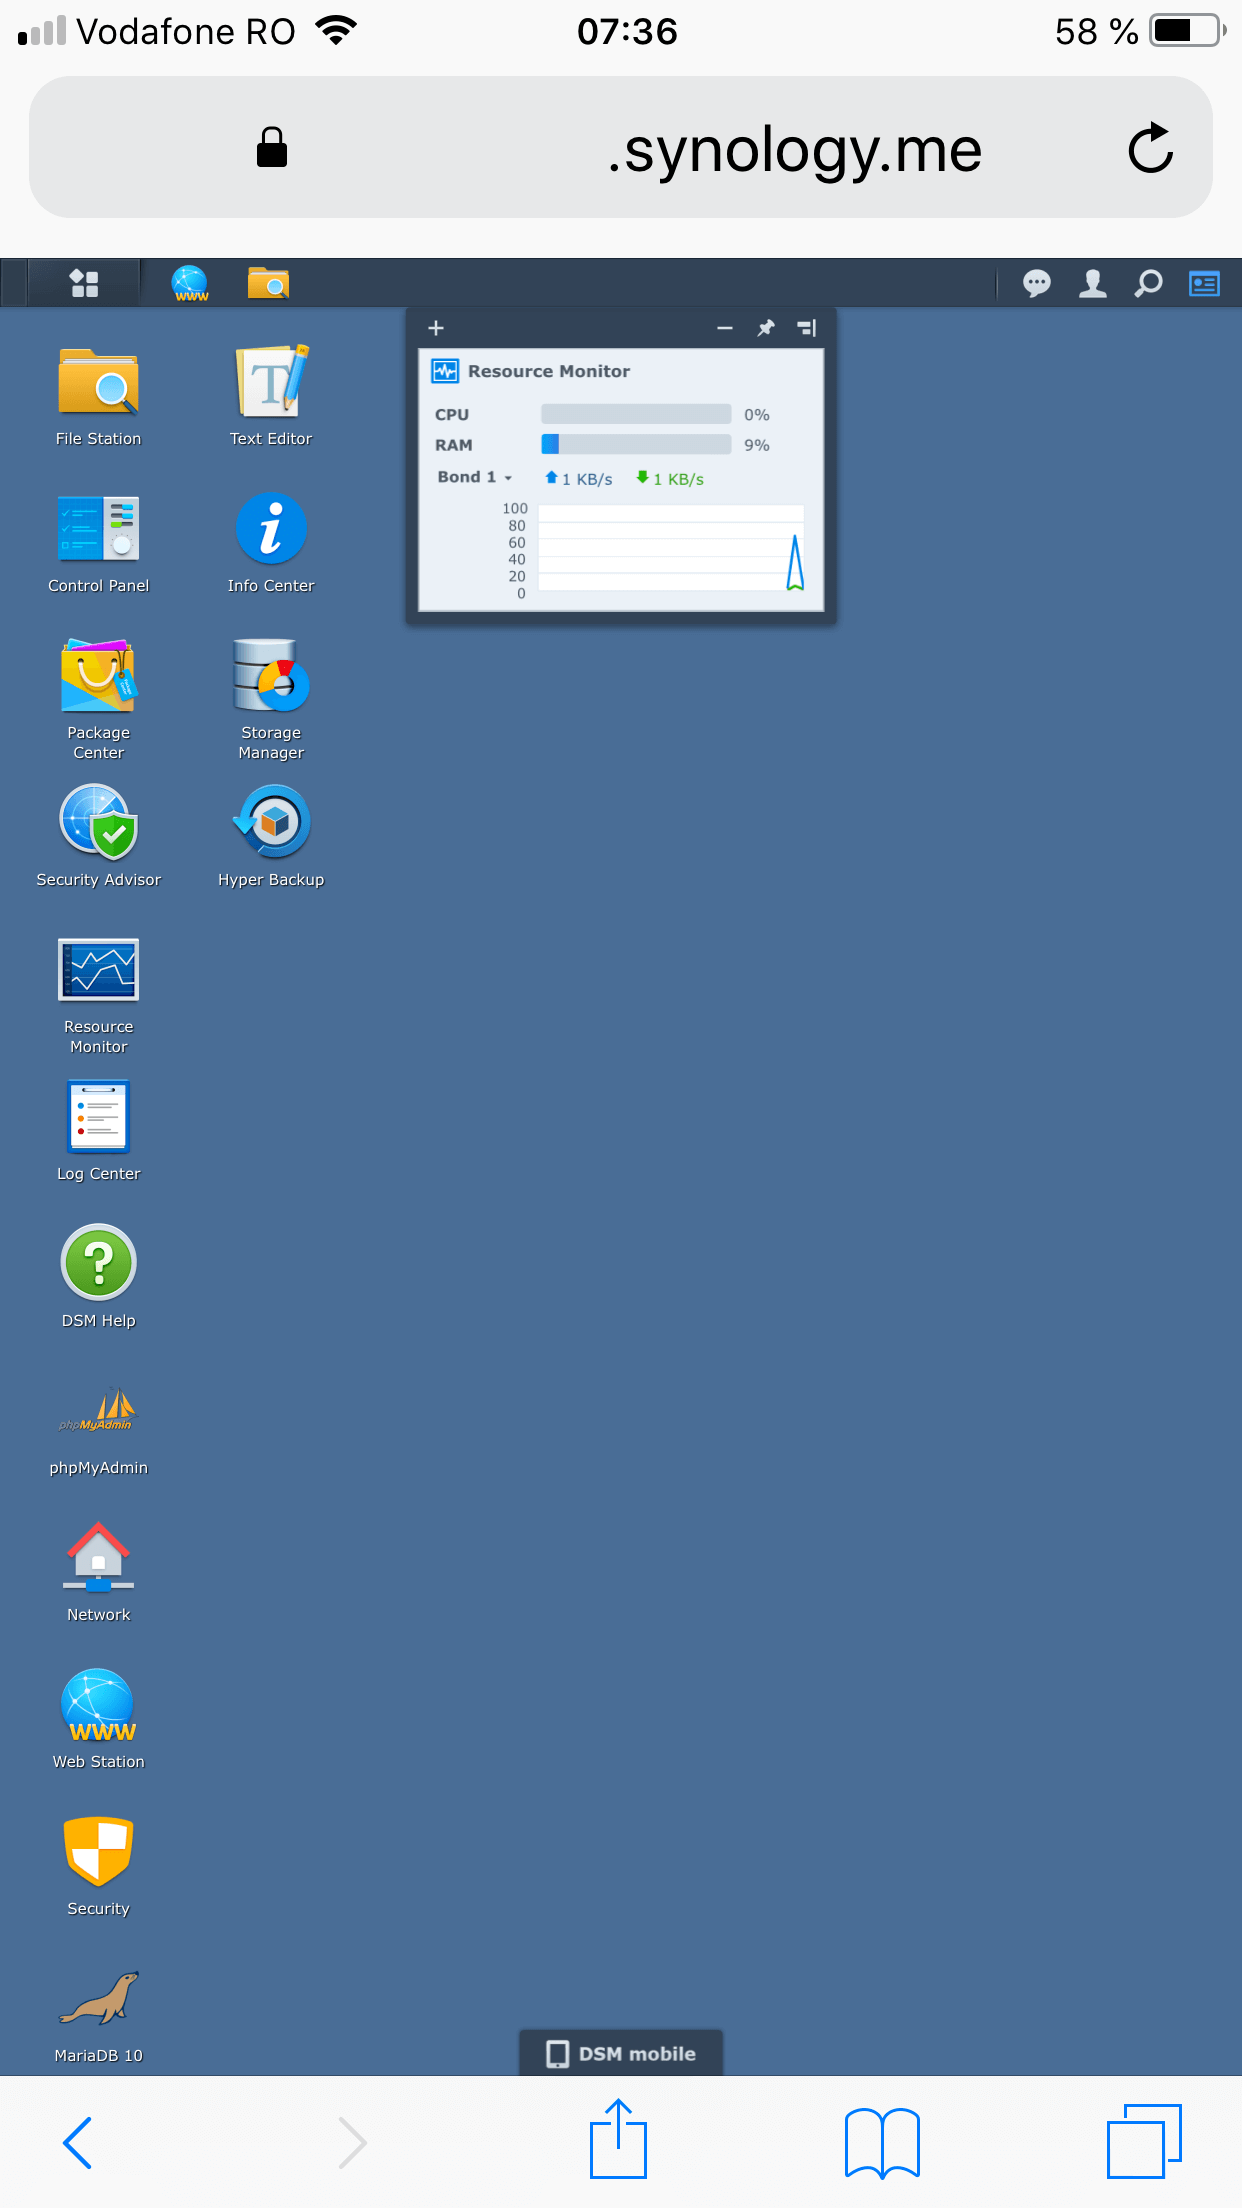 synology big icons mobile